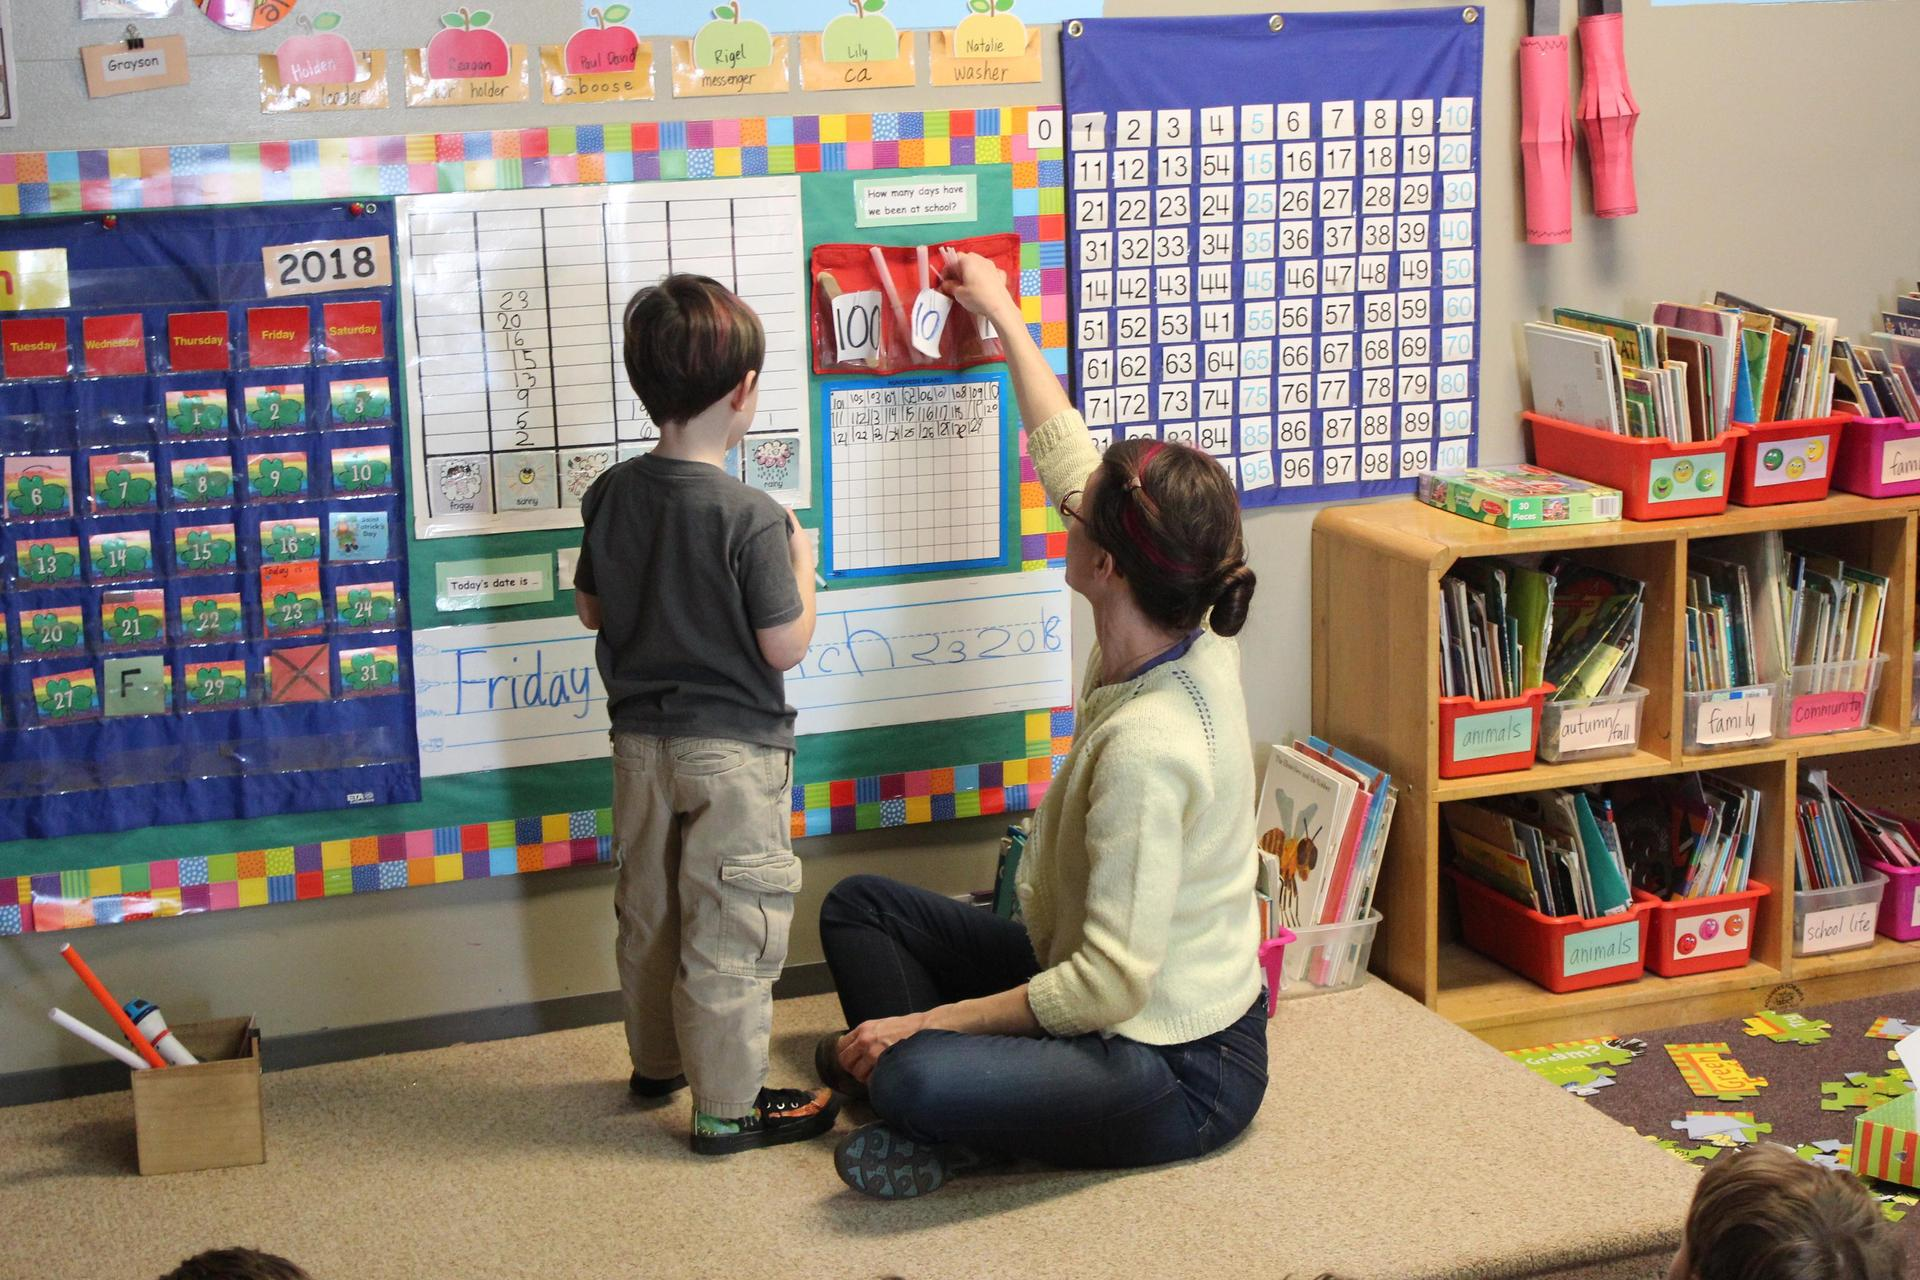 A teacher assists student at the front of class